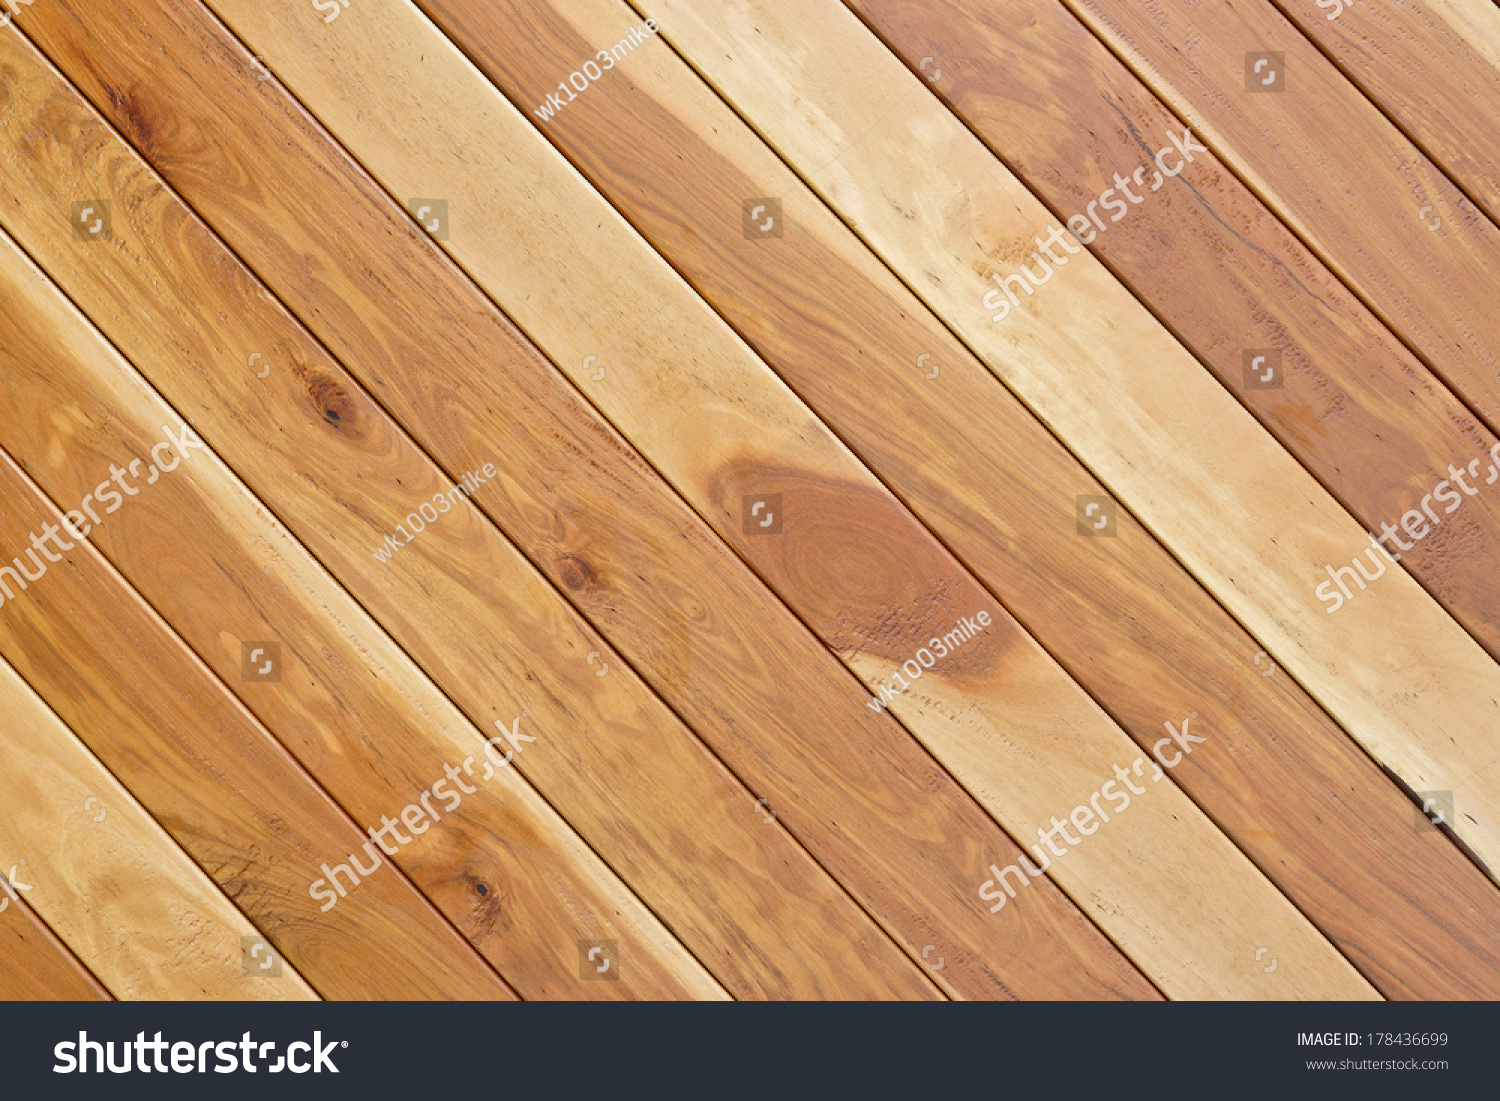 Teak Wandplank Teak Wood Plank Texture Natural Patterns Stock Photo Edit Now